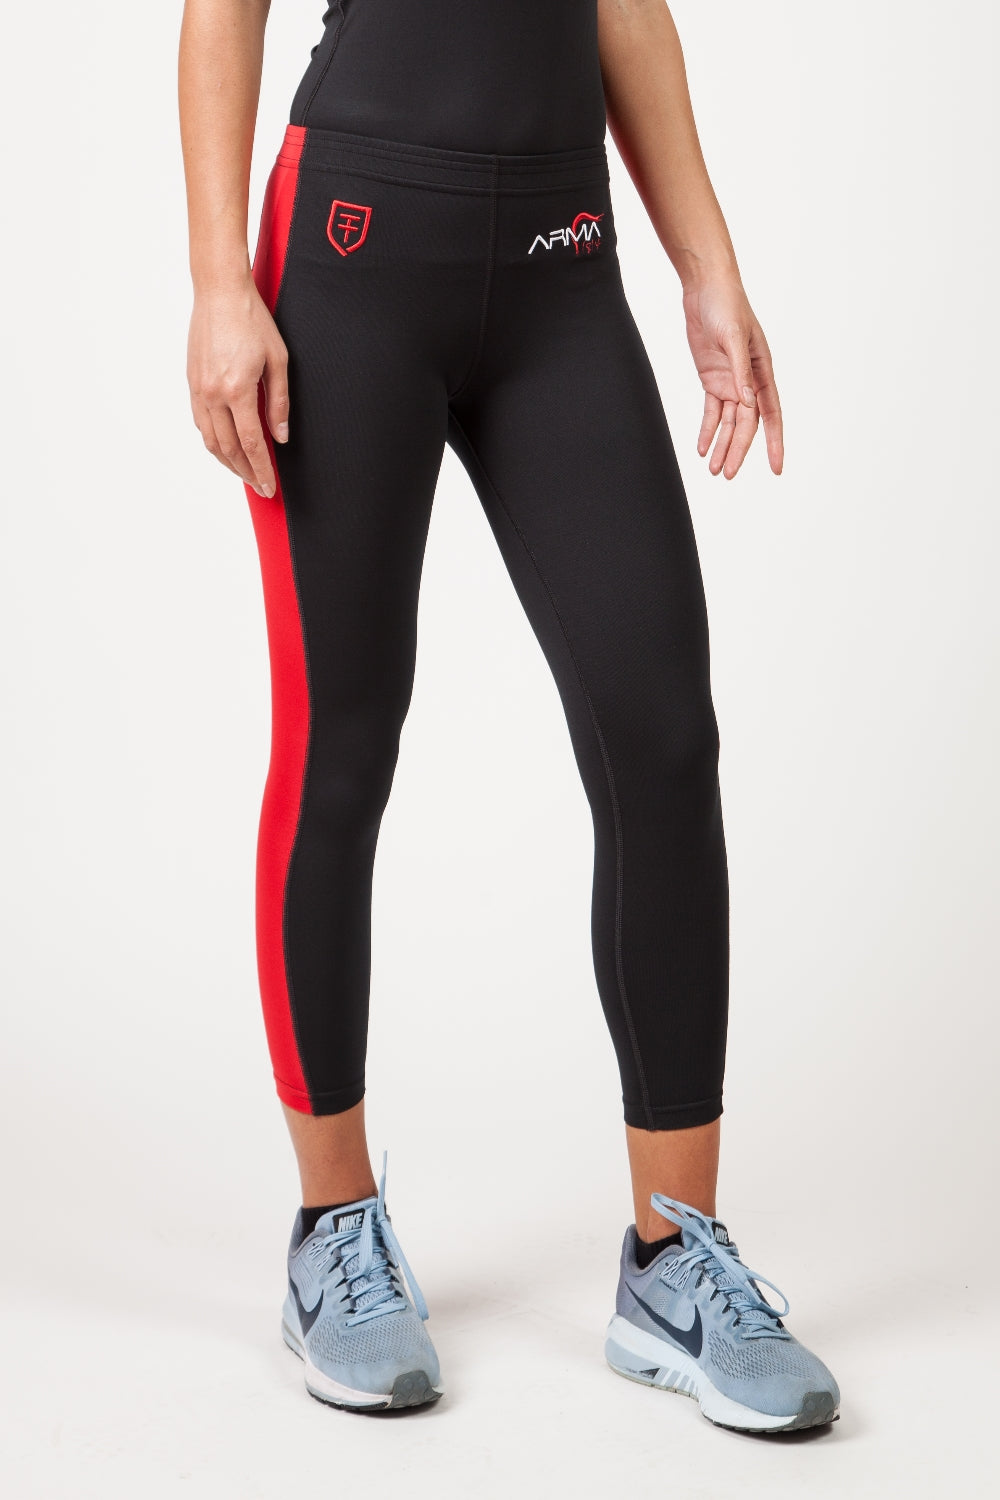 Arma 1814 Women's Sports Leggings